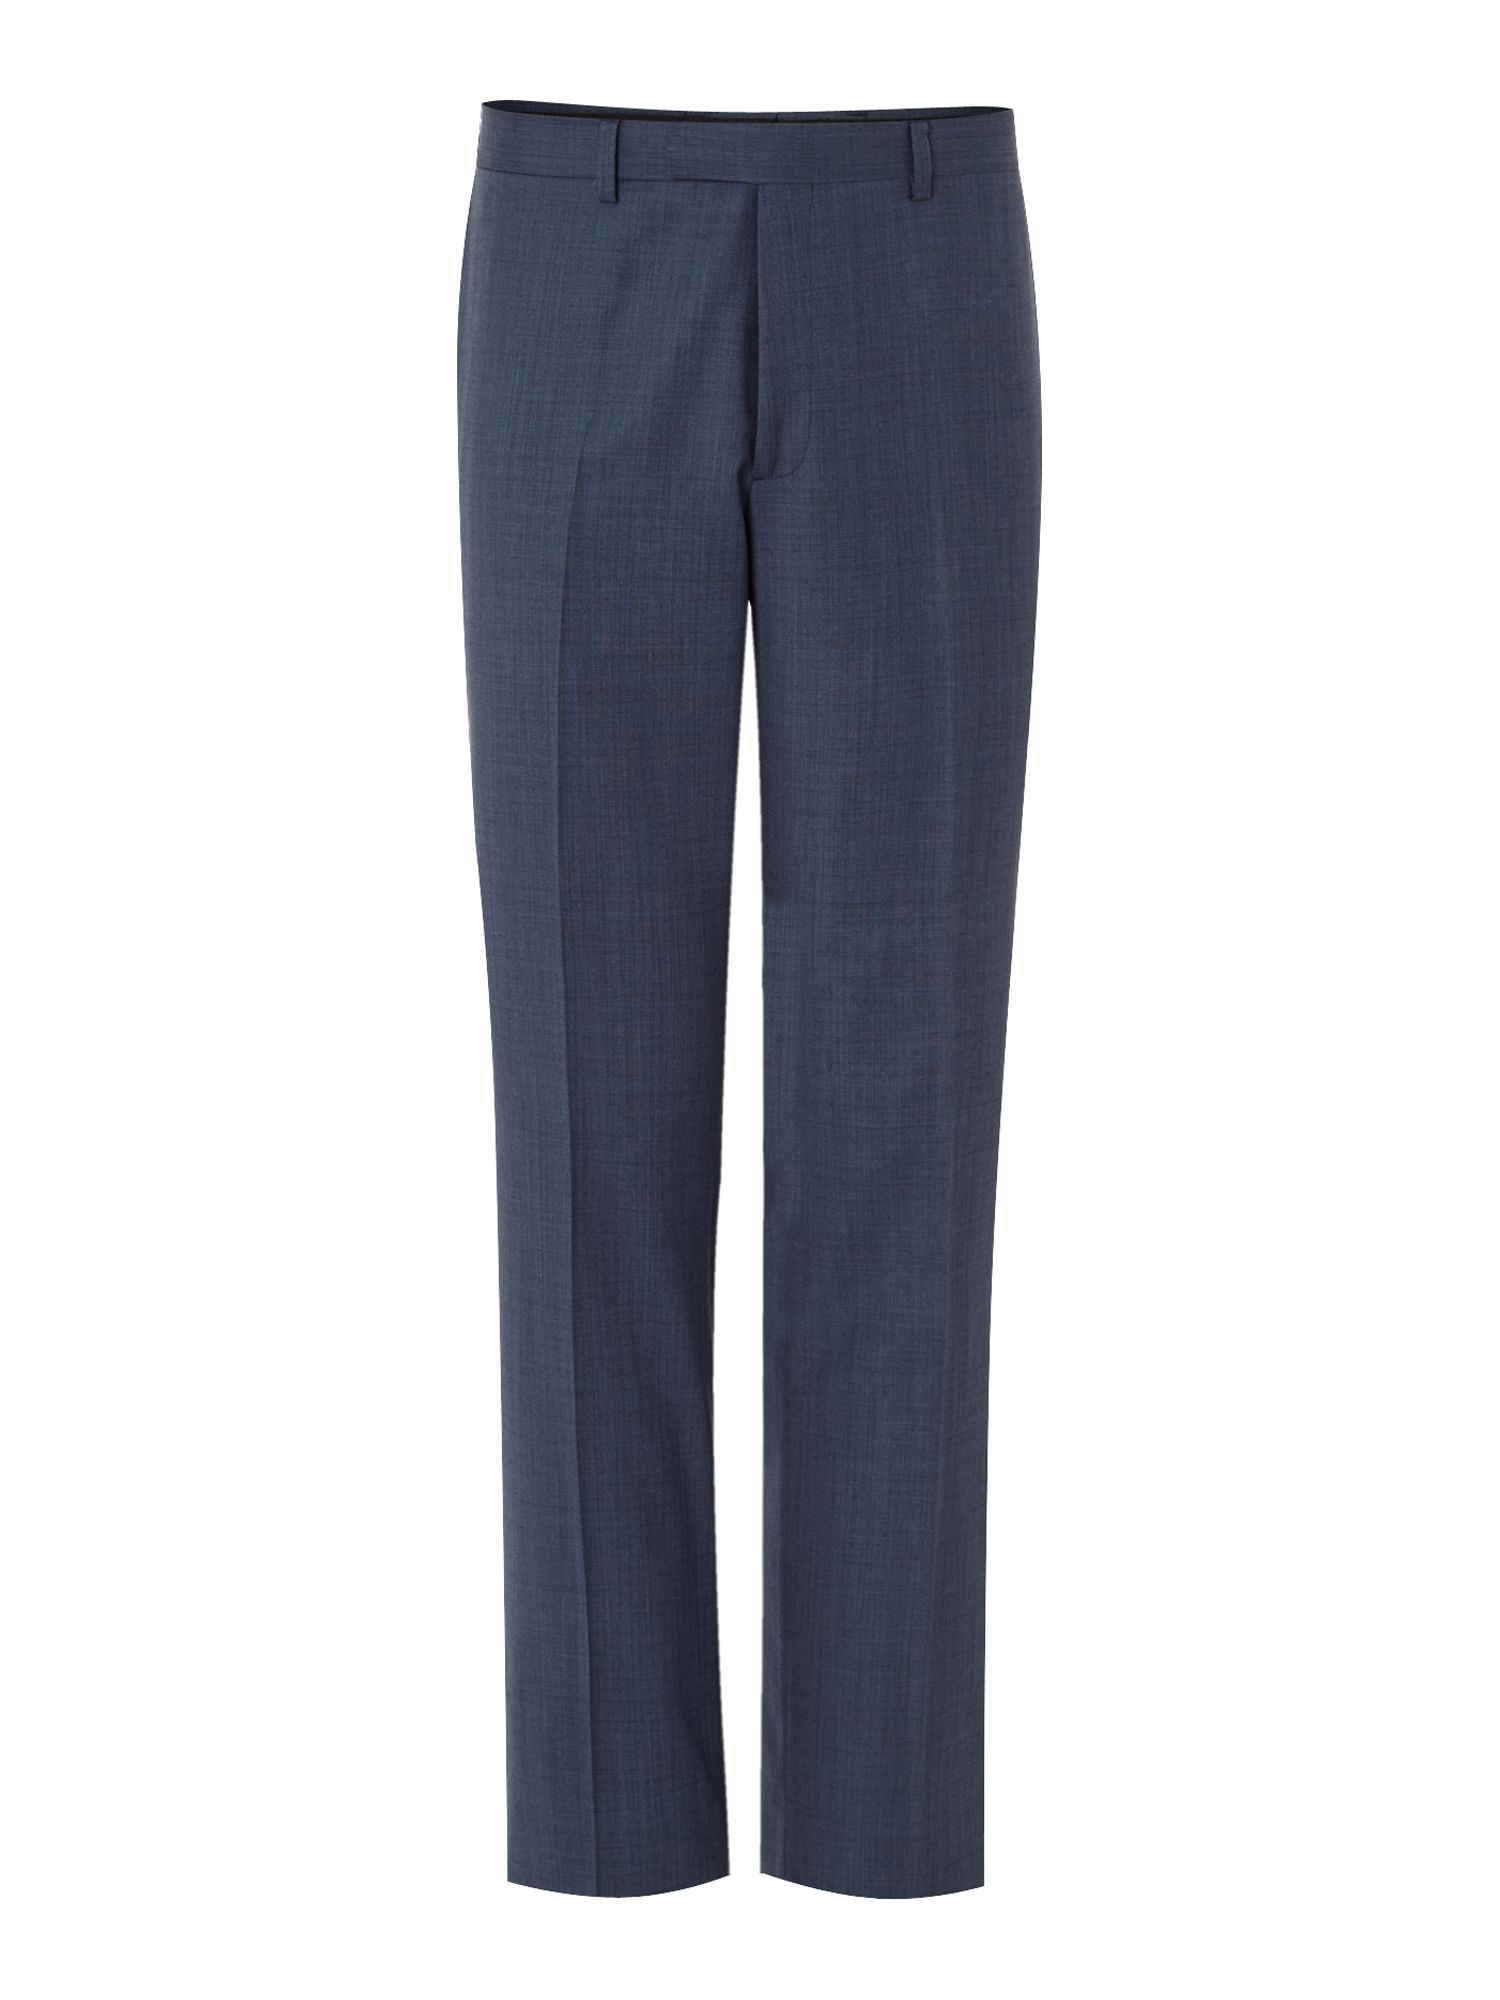 Coledale End on End Suit Trousers